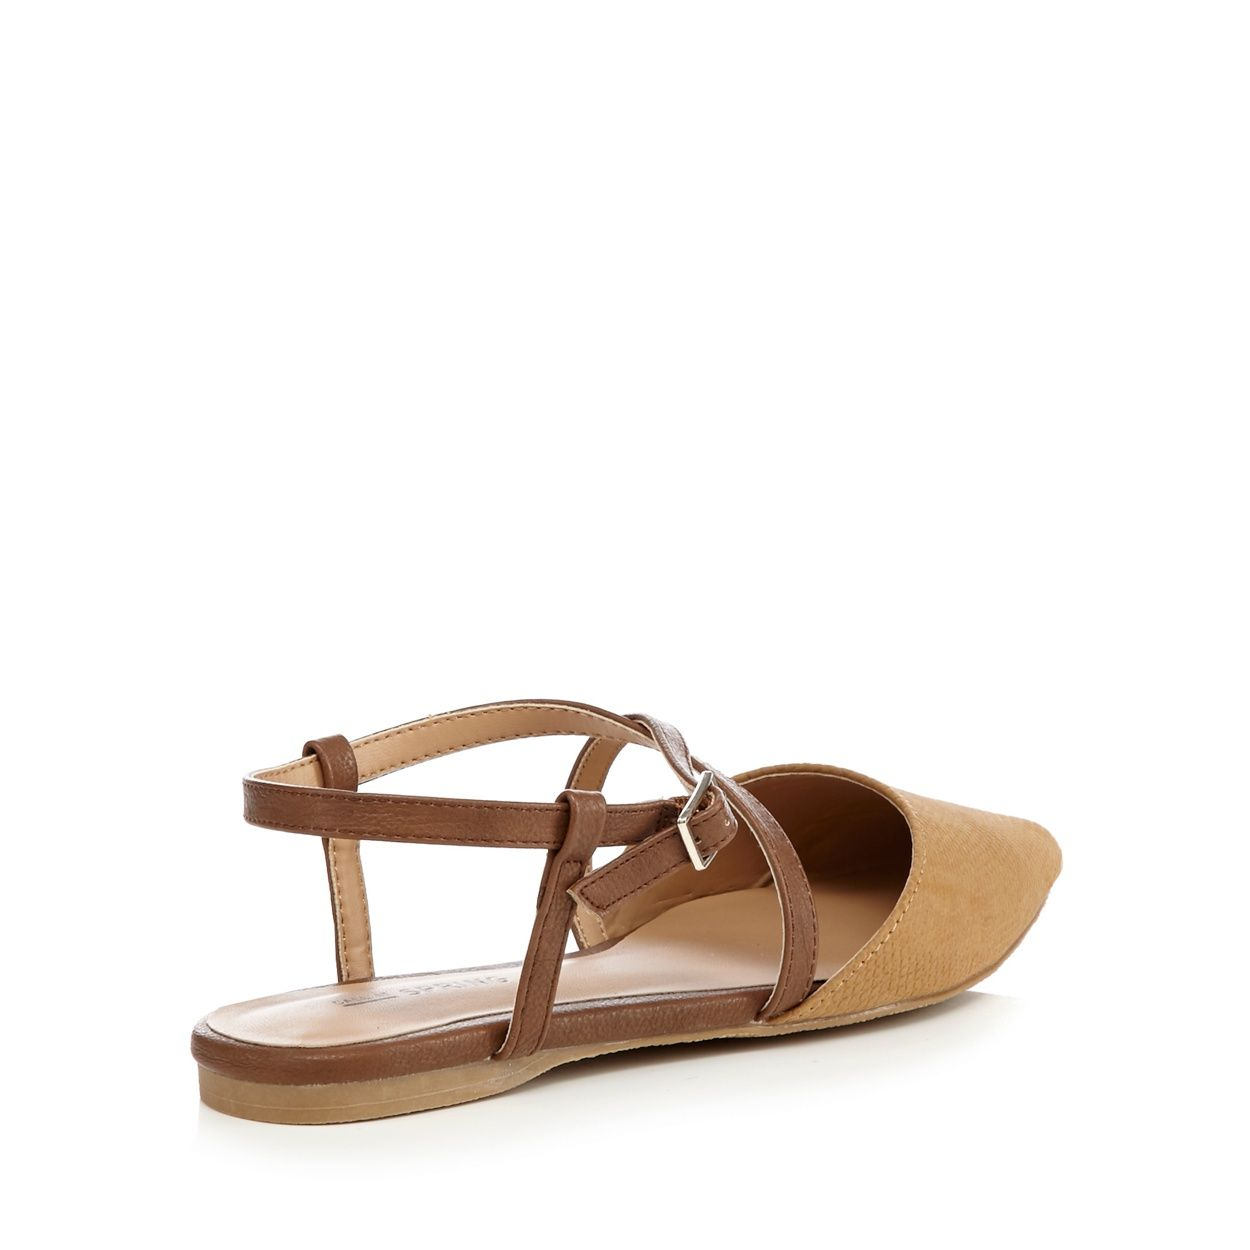 Call It Spring Tan 'Frogaut' ankle strap sandals